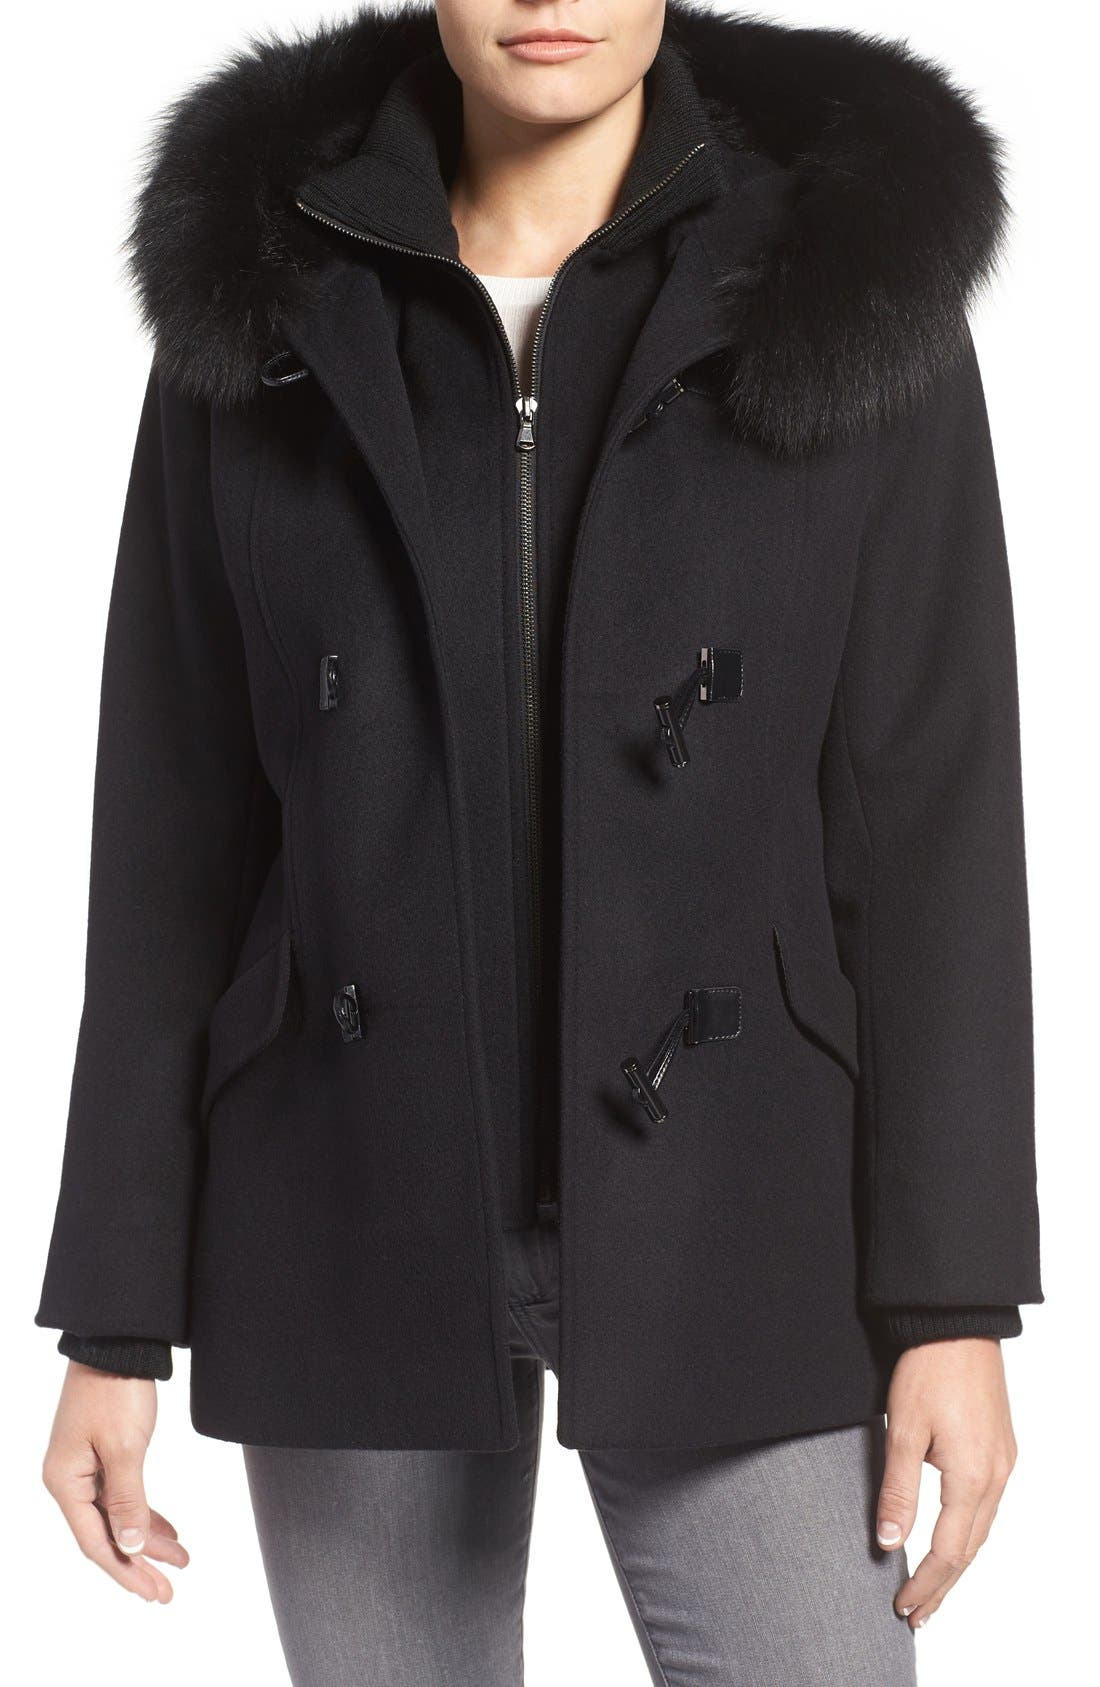 Wool Blend Duffle Coat with Genuine Fox Fur Trim,                             Main thumbnail 1, color,                             Black